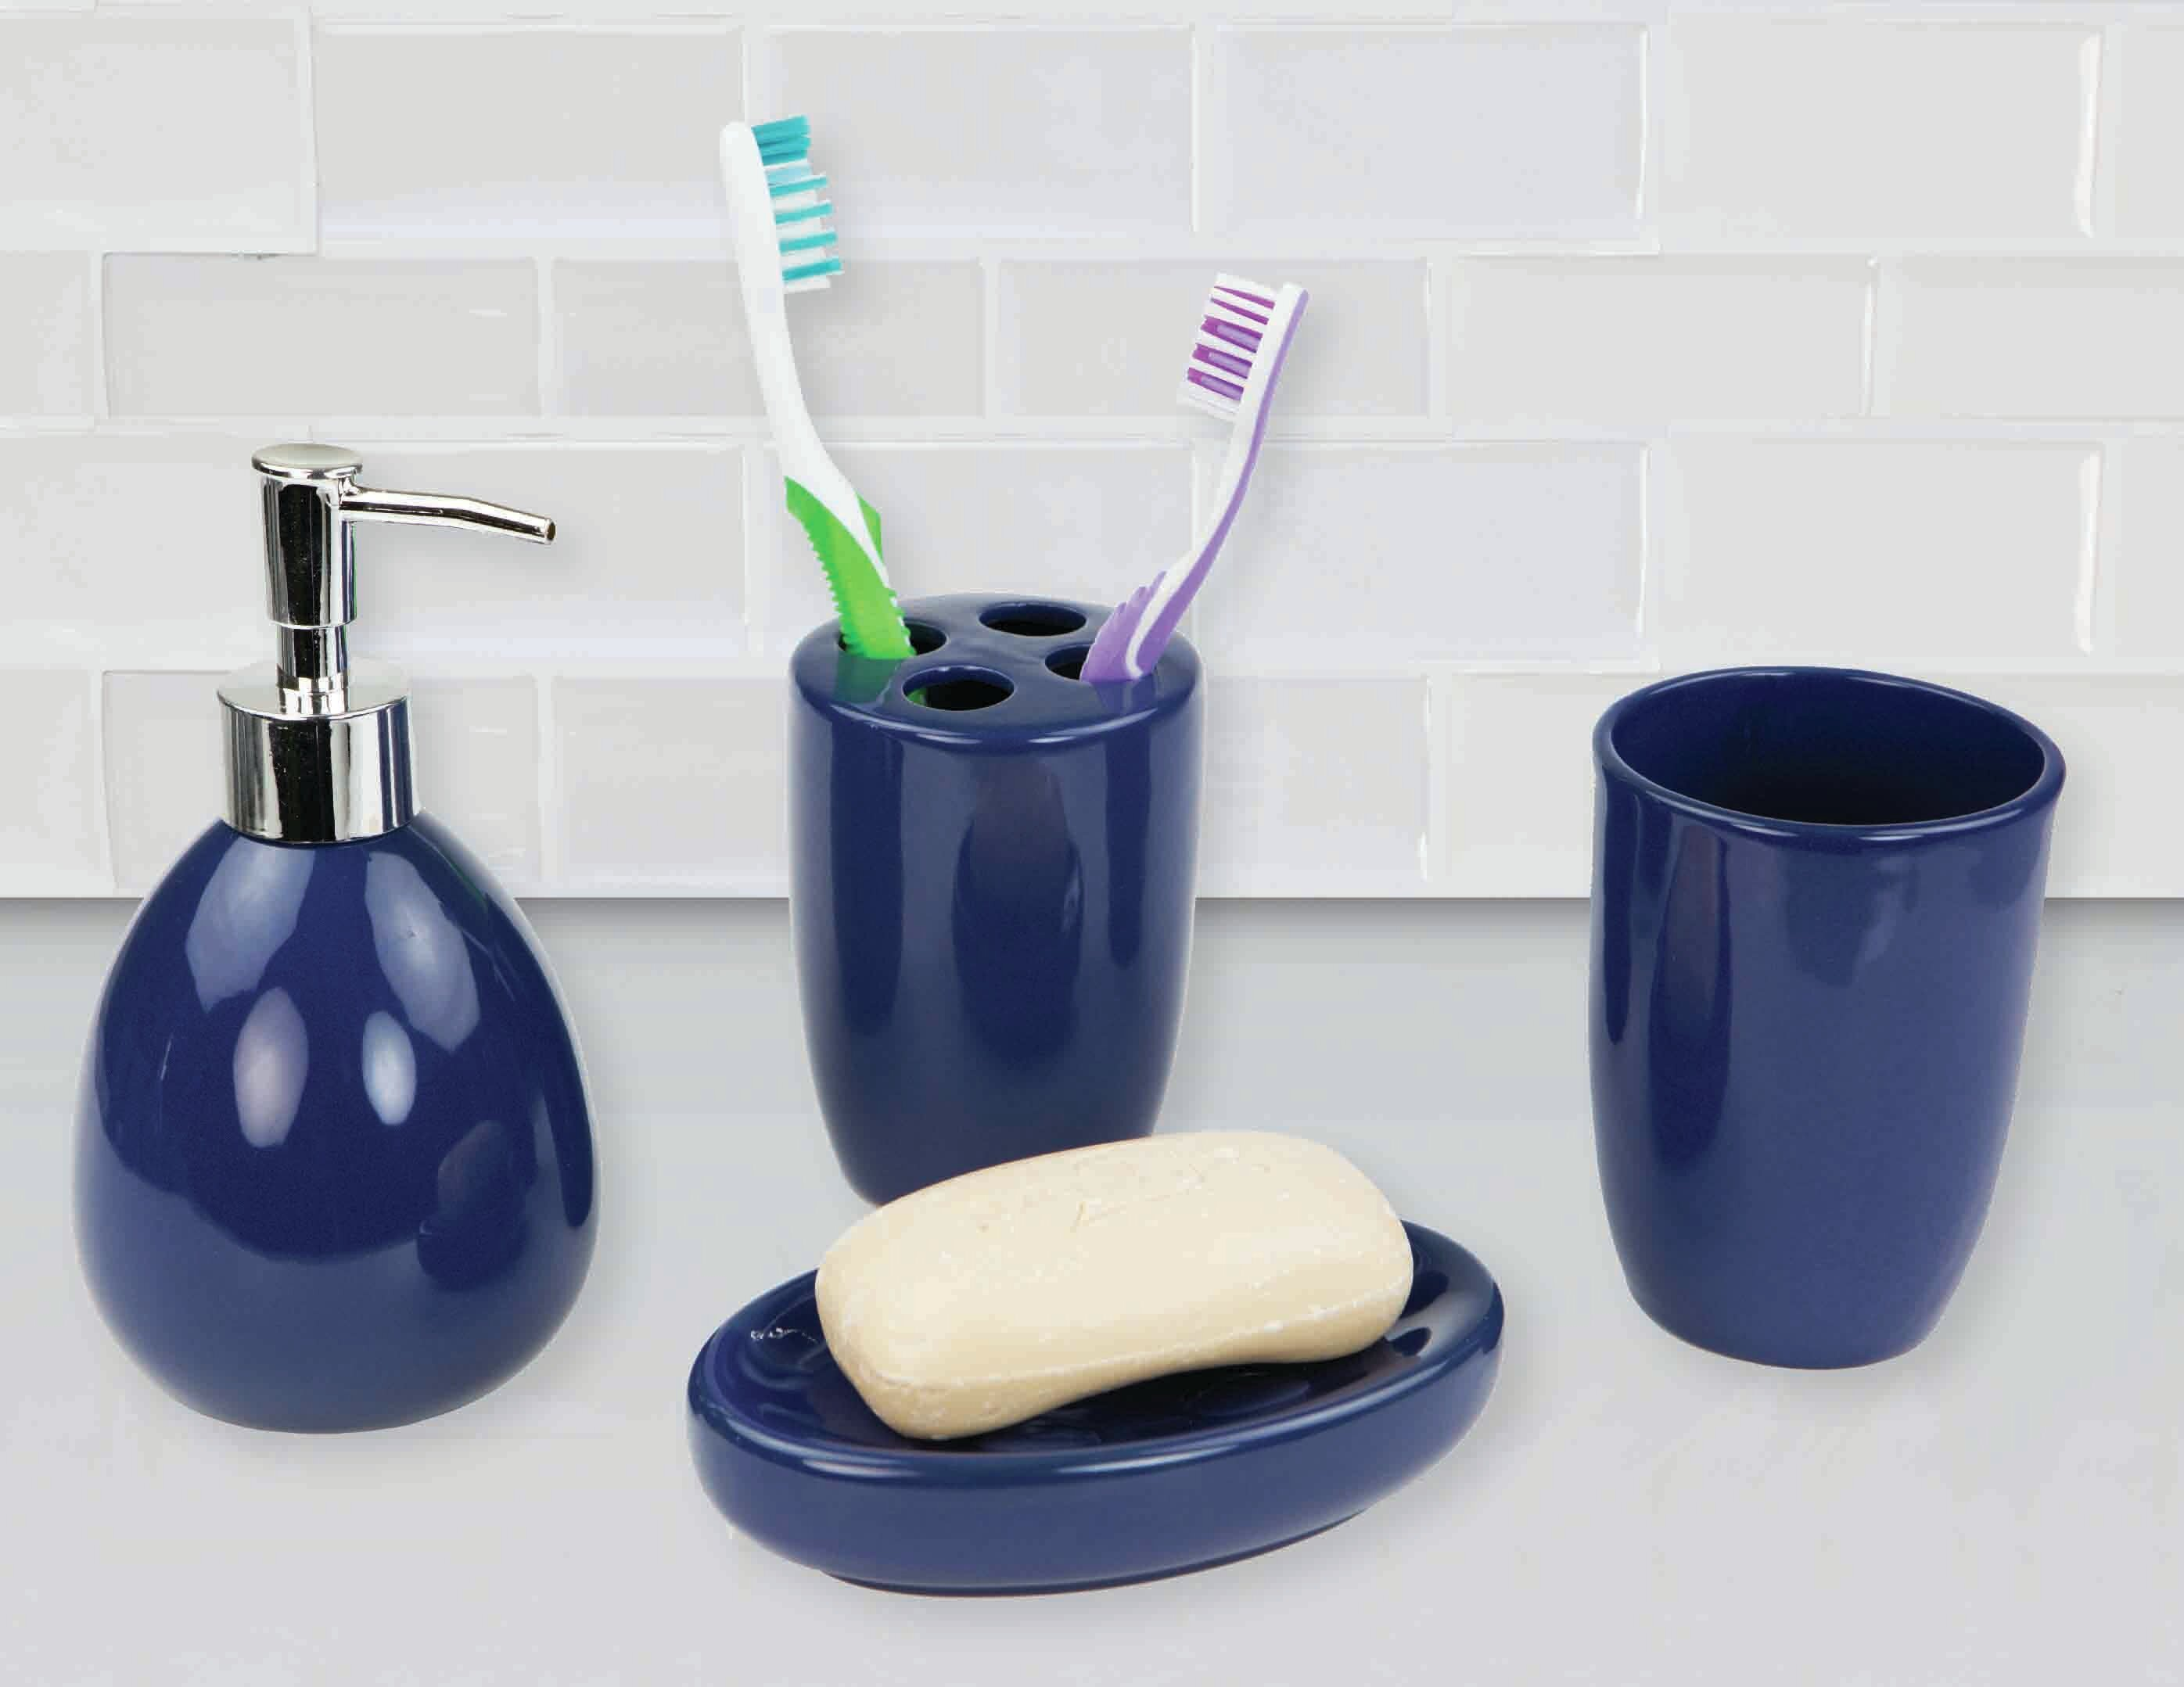 Toothbrush Holder Ready to Ship Pottery Bathroom Caddy 4 Slot Bathroom Container Green and Blue Accessory Tooth Brush Toothpaste